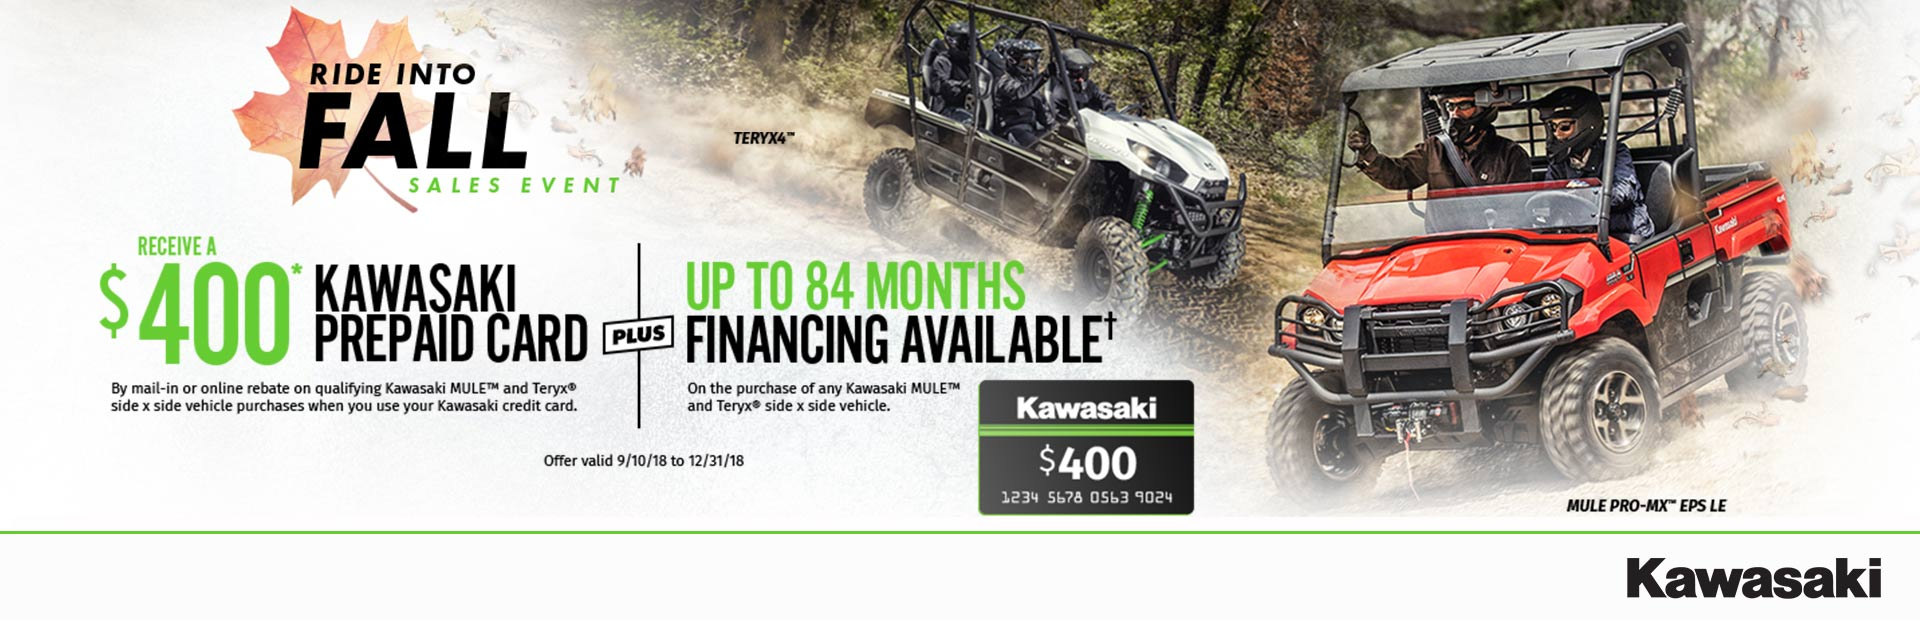 Kawasaki: $400* Prepaid Card with Qualifying Side x Side